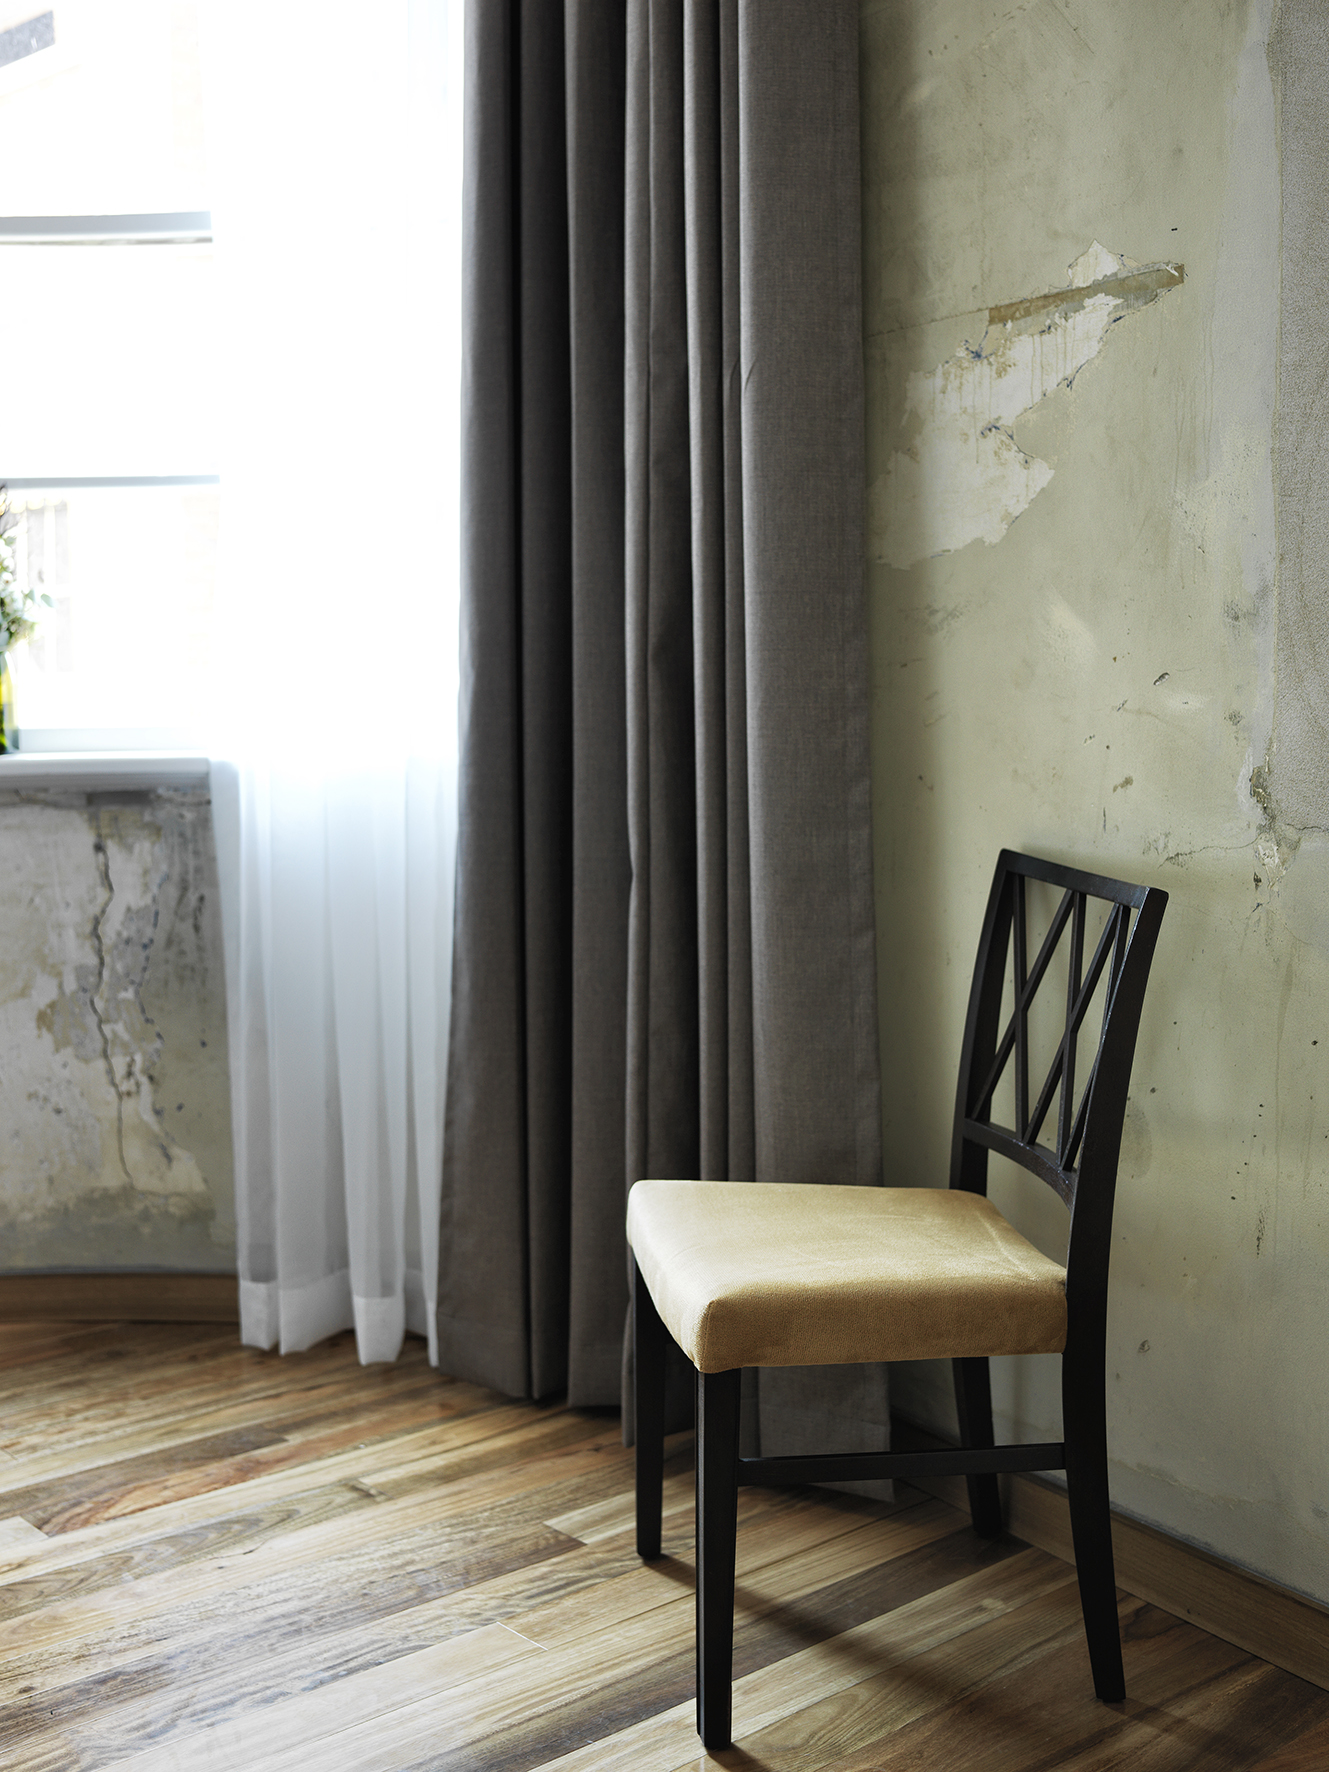 OLDCLARE_INTERIOR_ROOMFOUR_0025.jpg